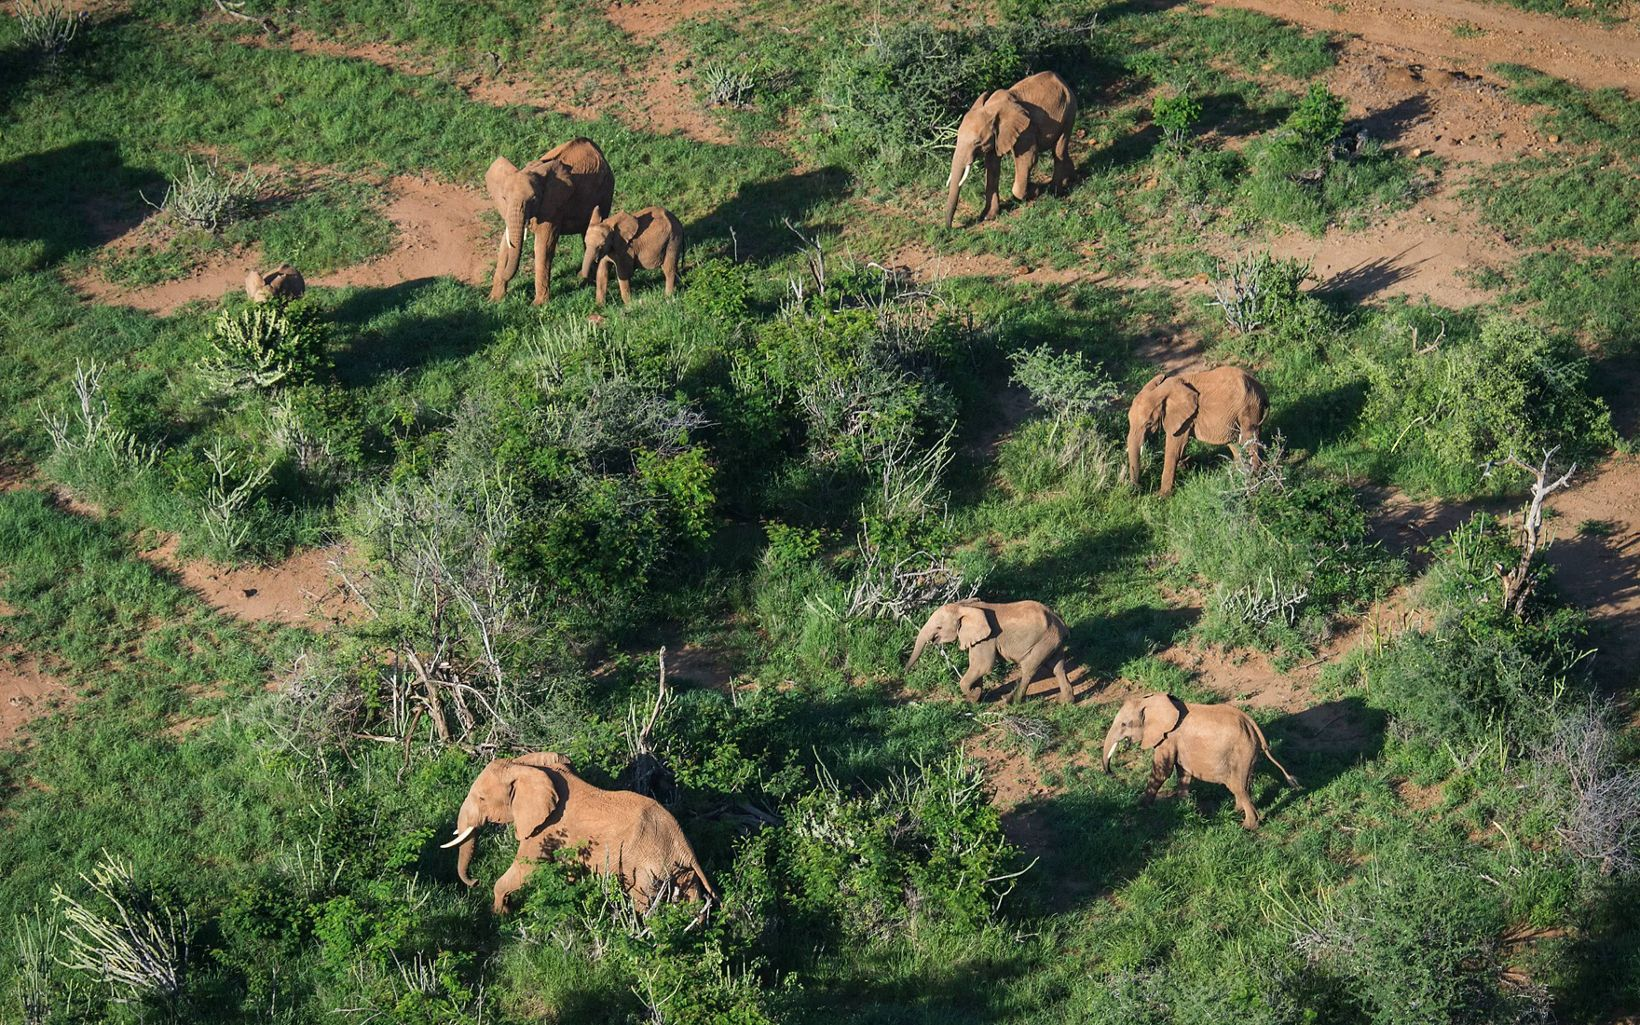 Aerial view of elephants at Loisaba Conservancy in northern Kenya.